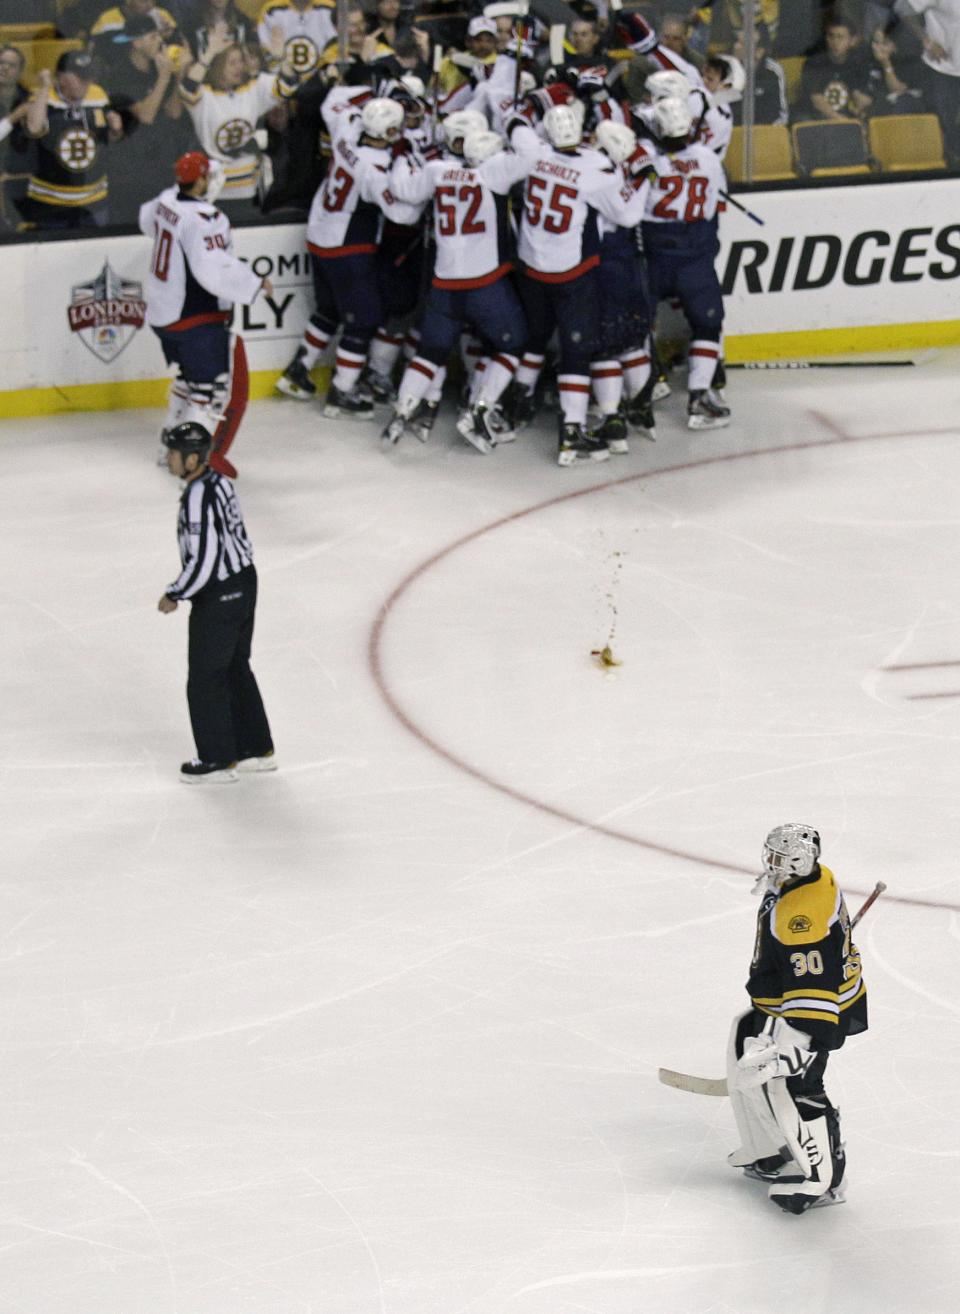 As the Washington Capitals celebrate their win, Boston Bruins goalie Tim Thomas (30) skates off the ice following Game 7 of an NHL hockey Stanley Cup first-round playoff series, in Boston on Wednesday, April 25, 2012. The Capitals won 2-1 in overtime. (AP Photo/Charles Krupa)